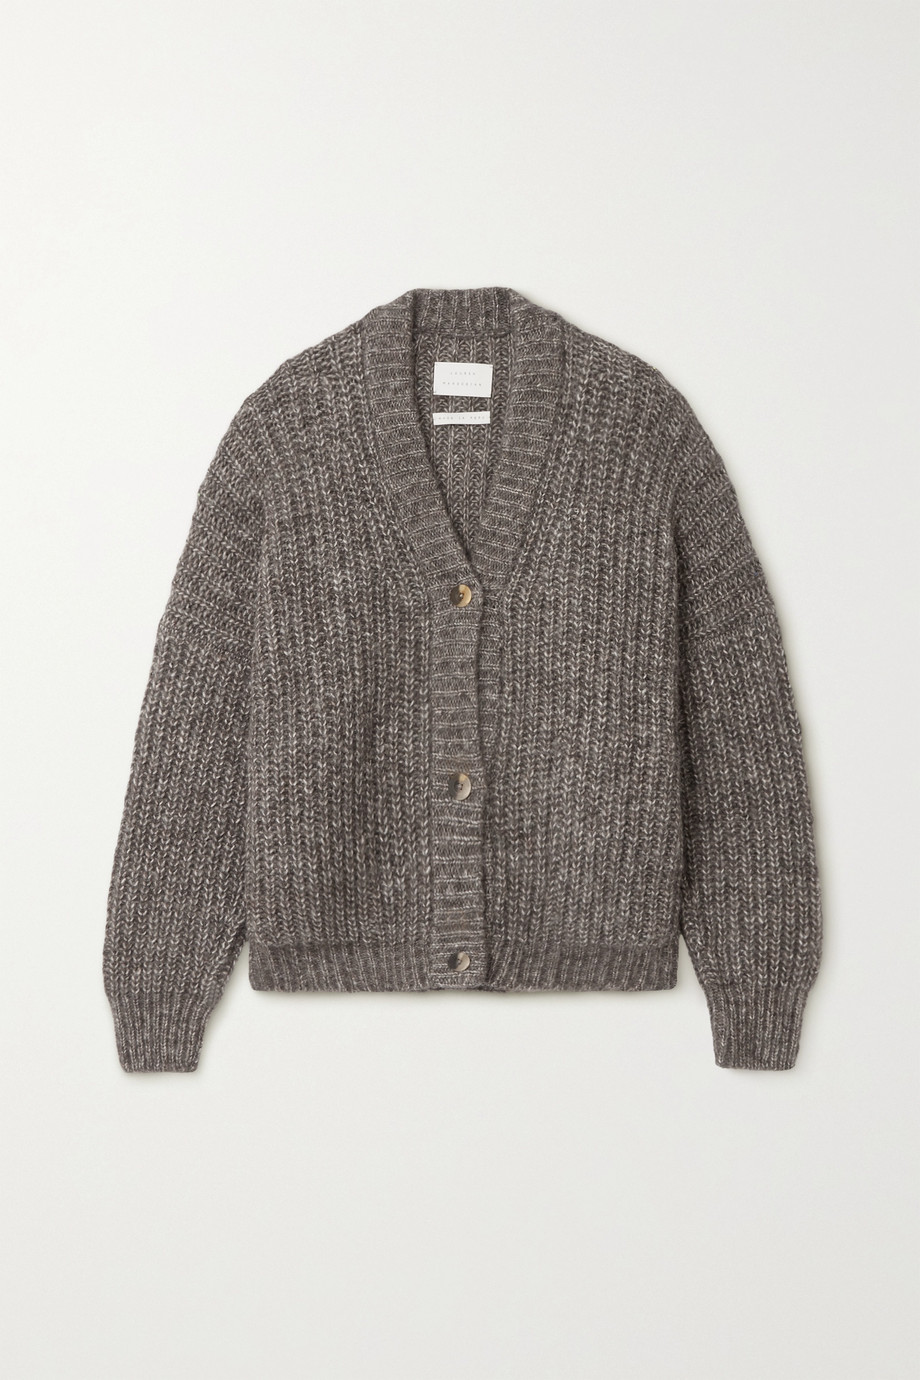 Lauren Manoogian Grandma ribbed Pima cotton, alpaca and wool-blend cardigan